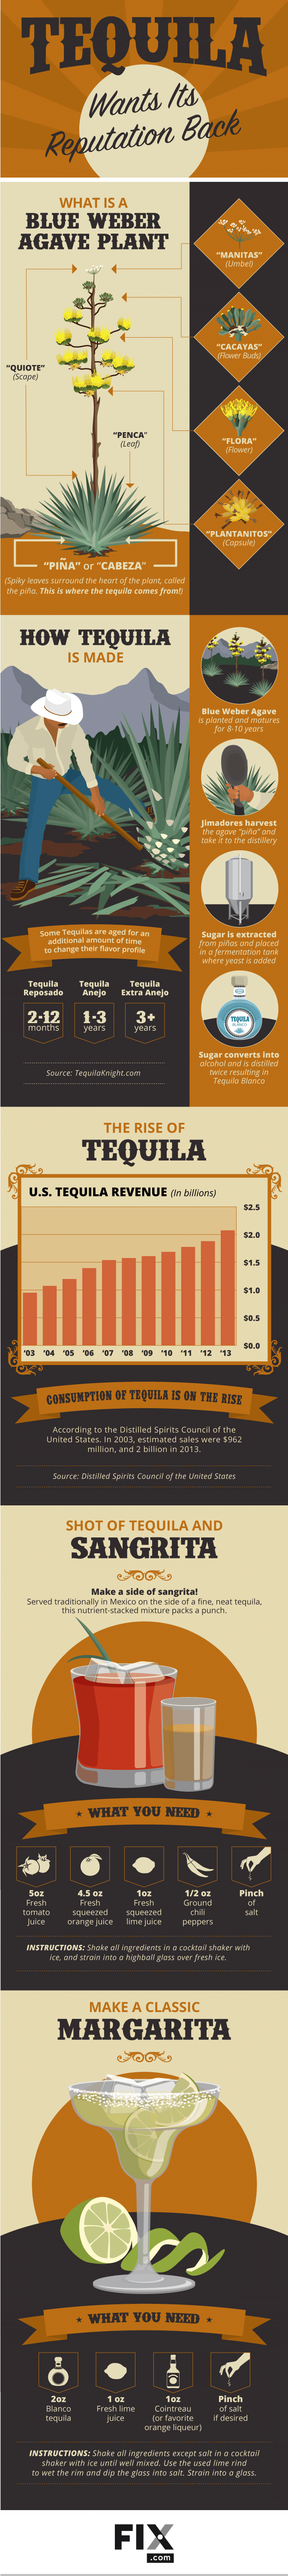 Tequila info for Cinco de Mayo